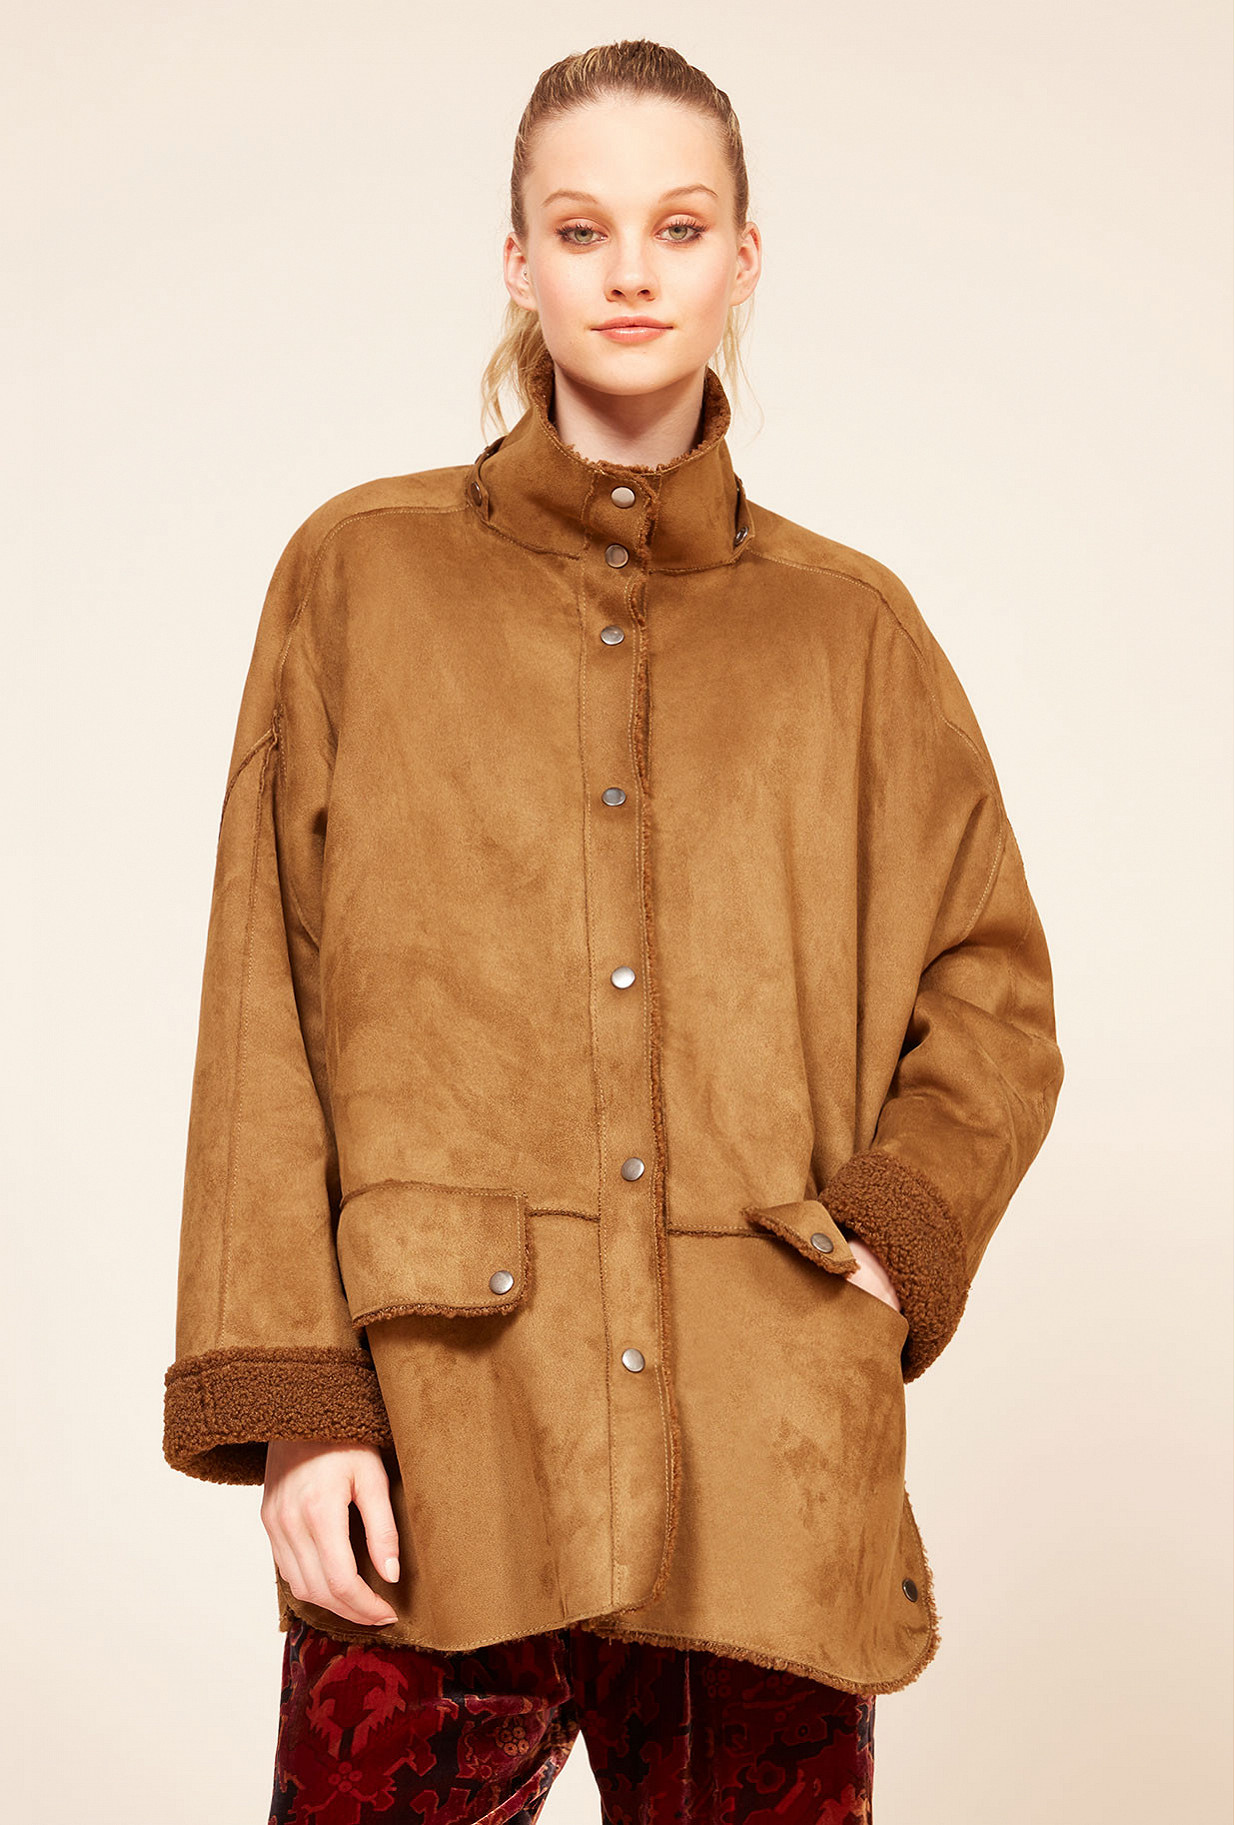 Khaki  Coat  Guevara Mes demoiselles fashion clothes designer Paris